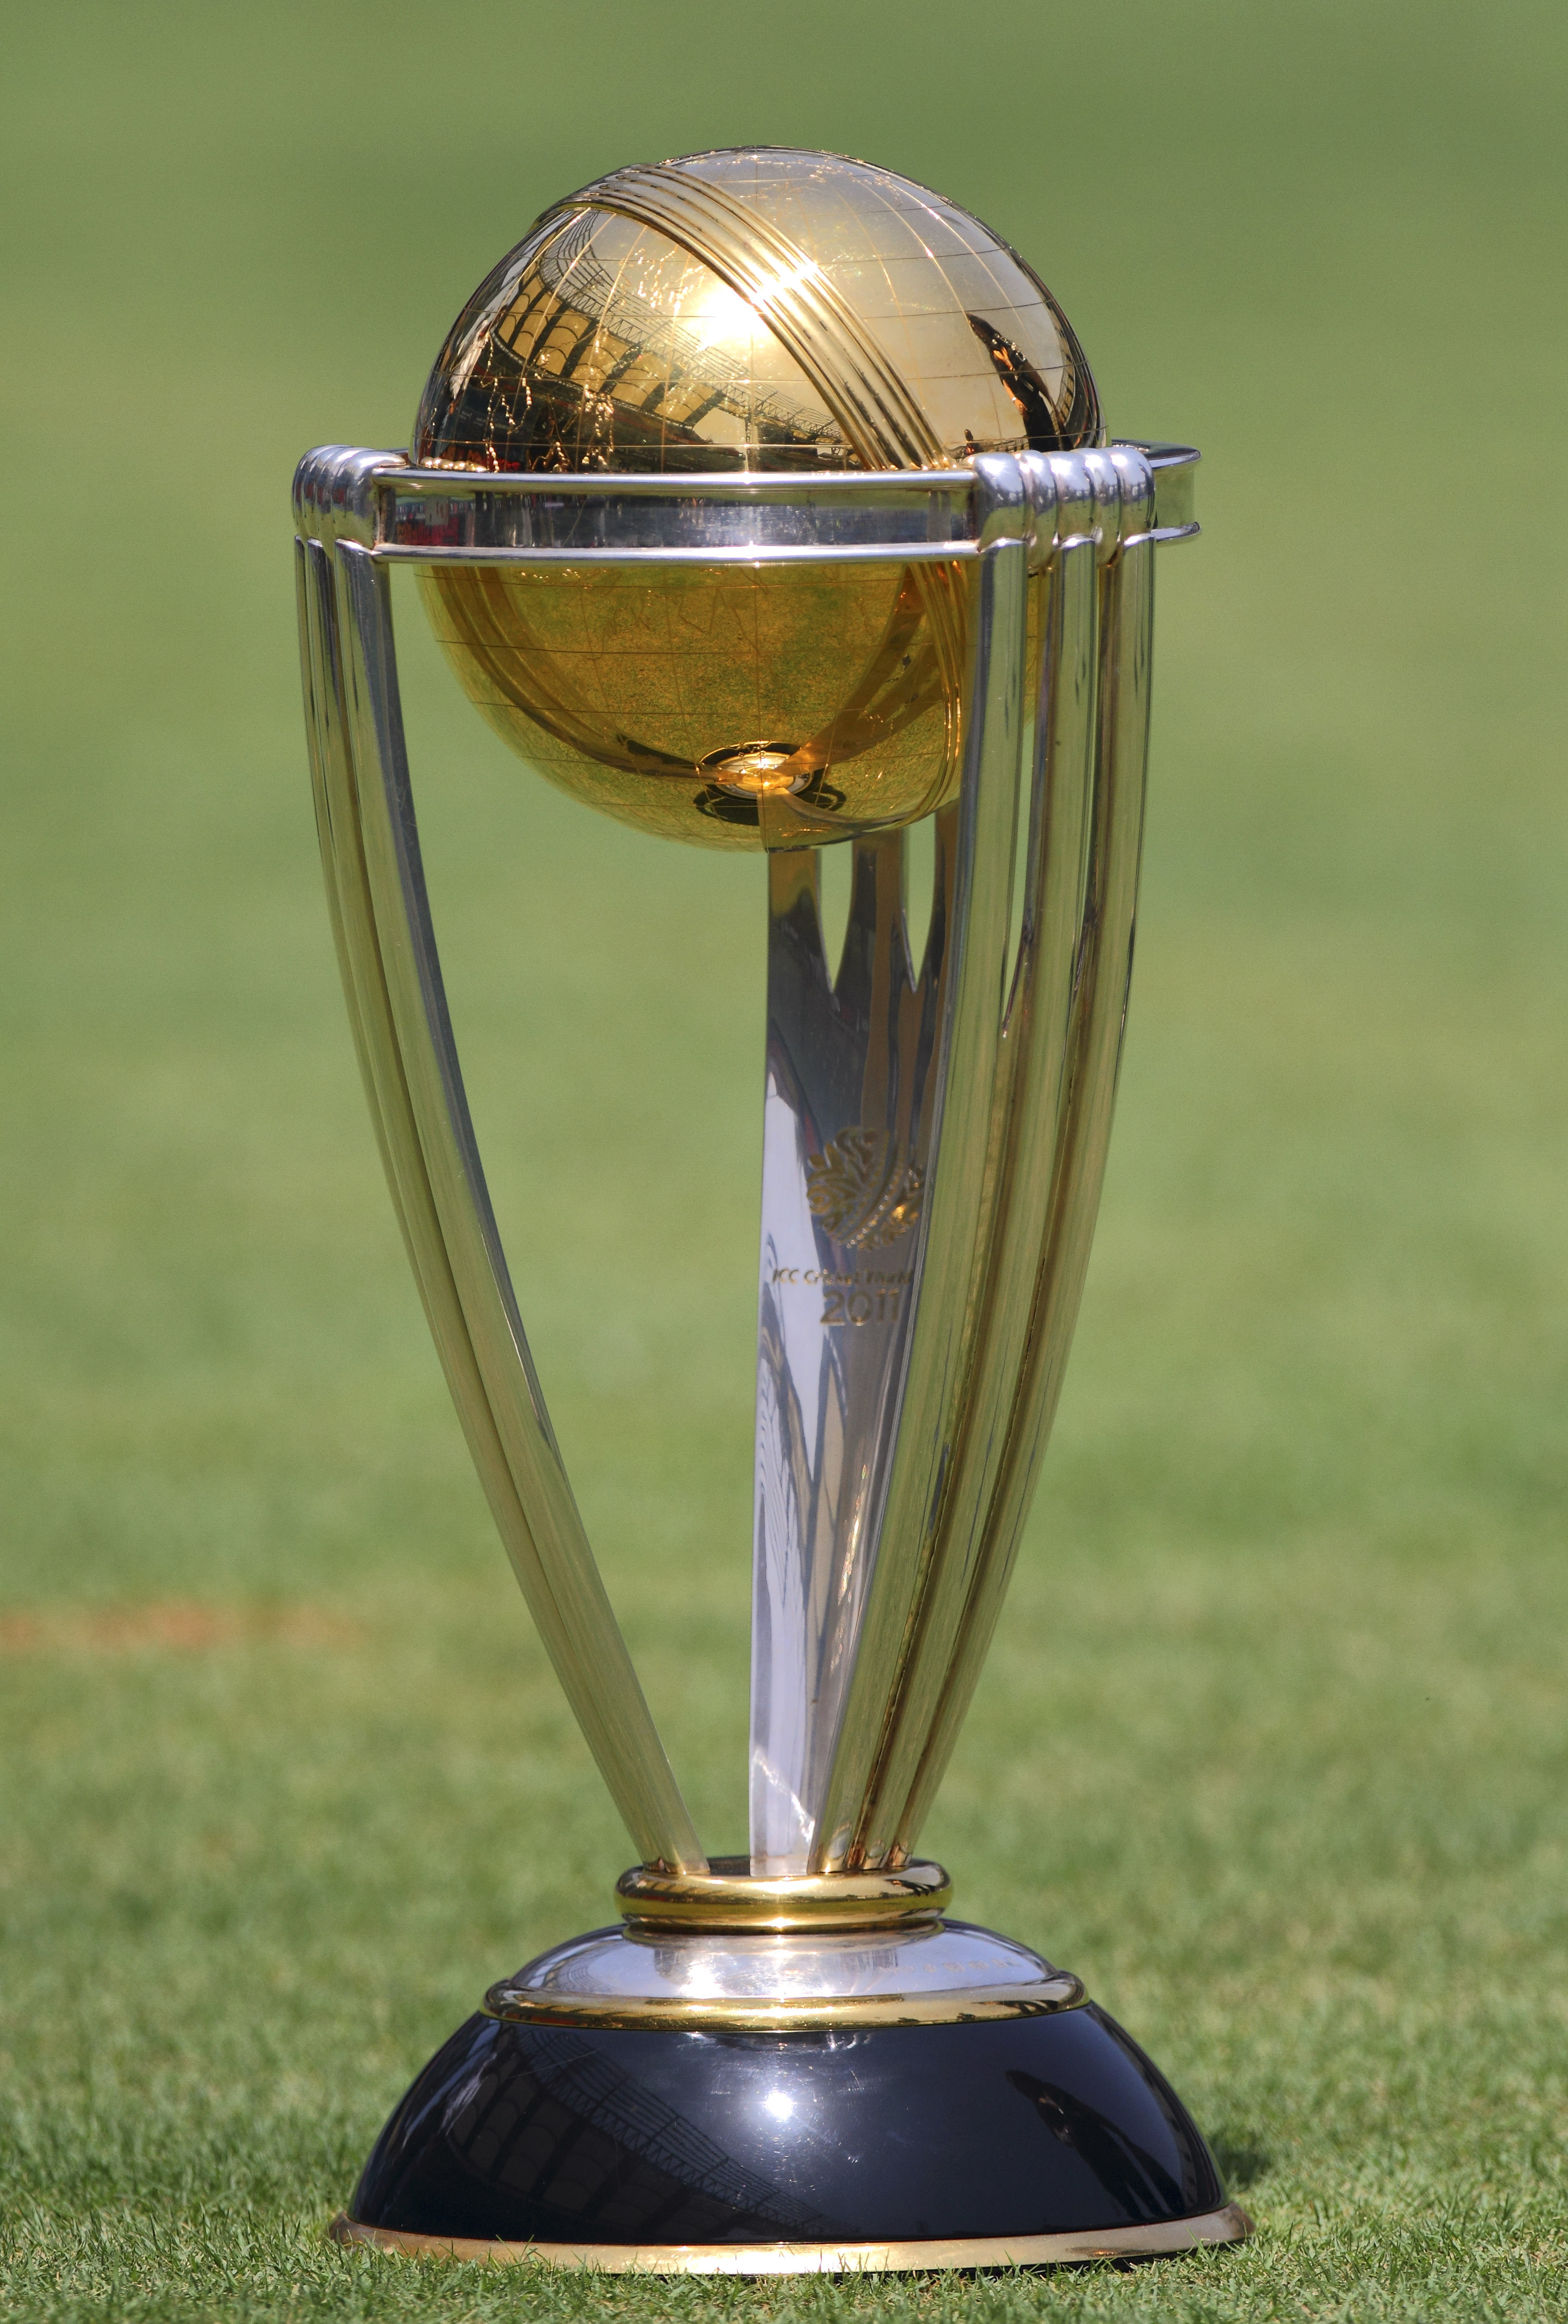 The ICC World Cup trophy.